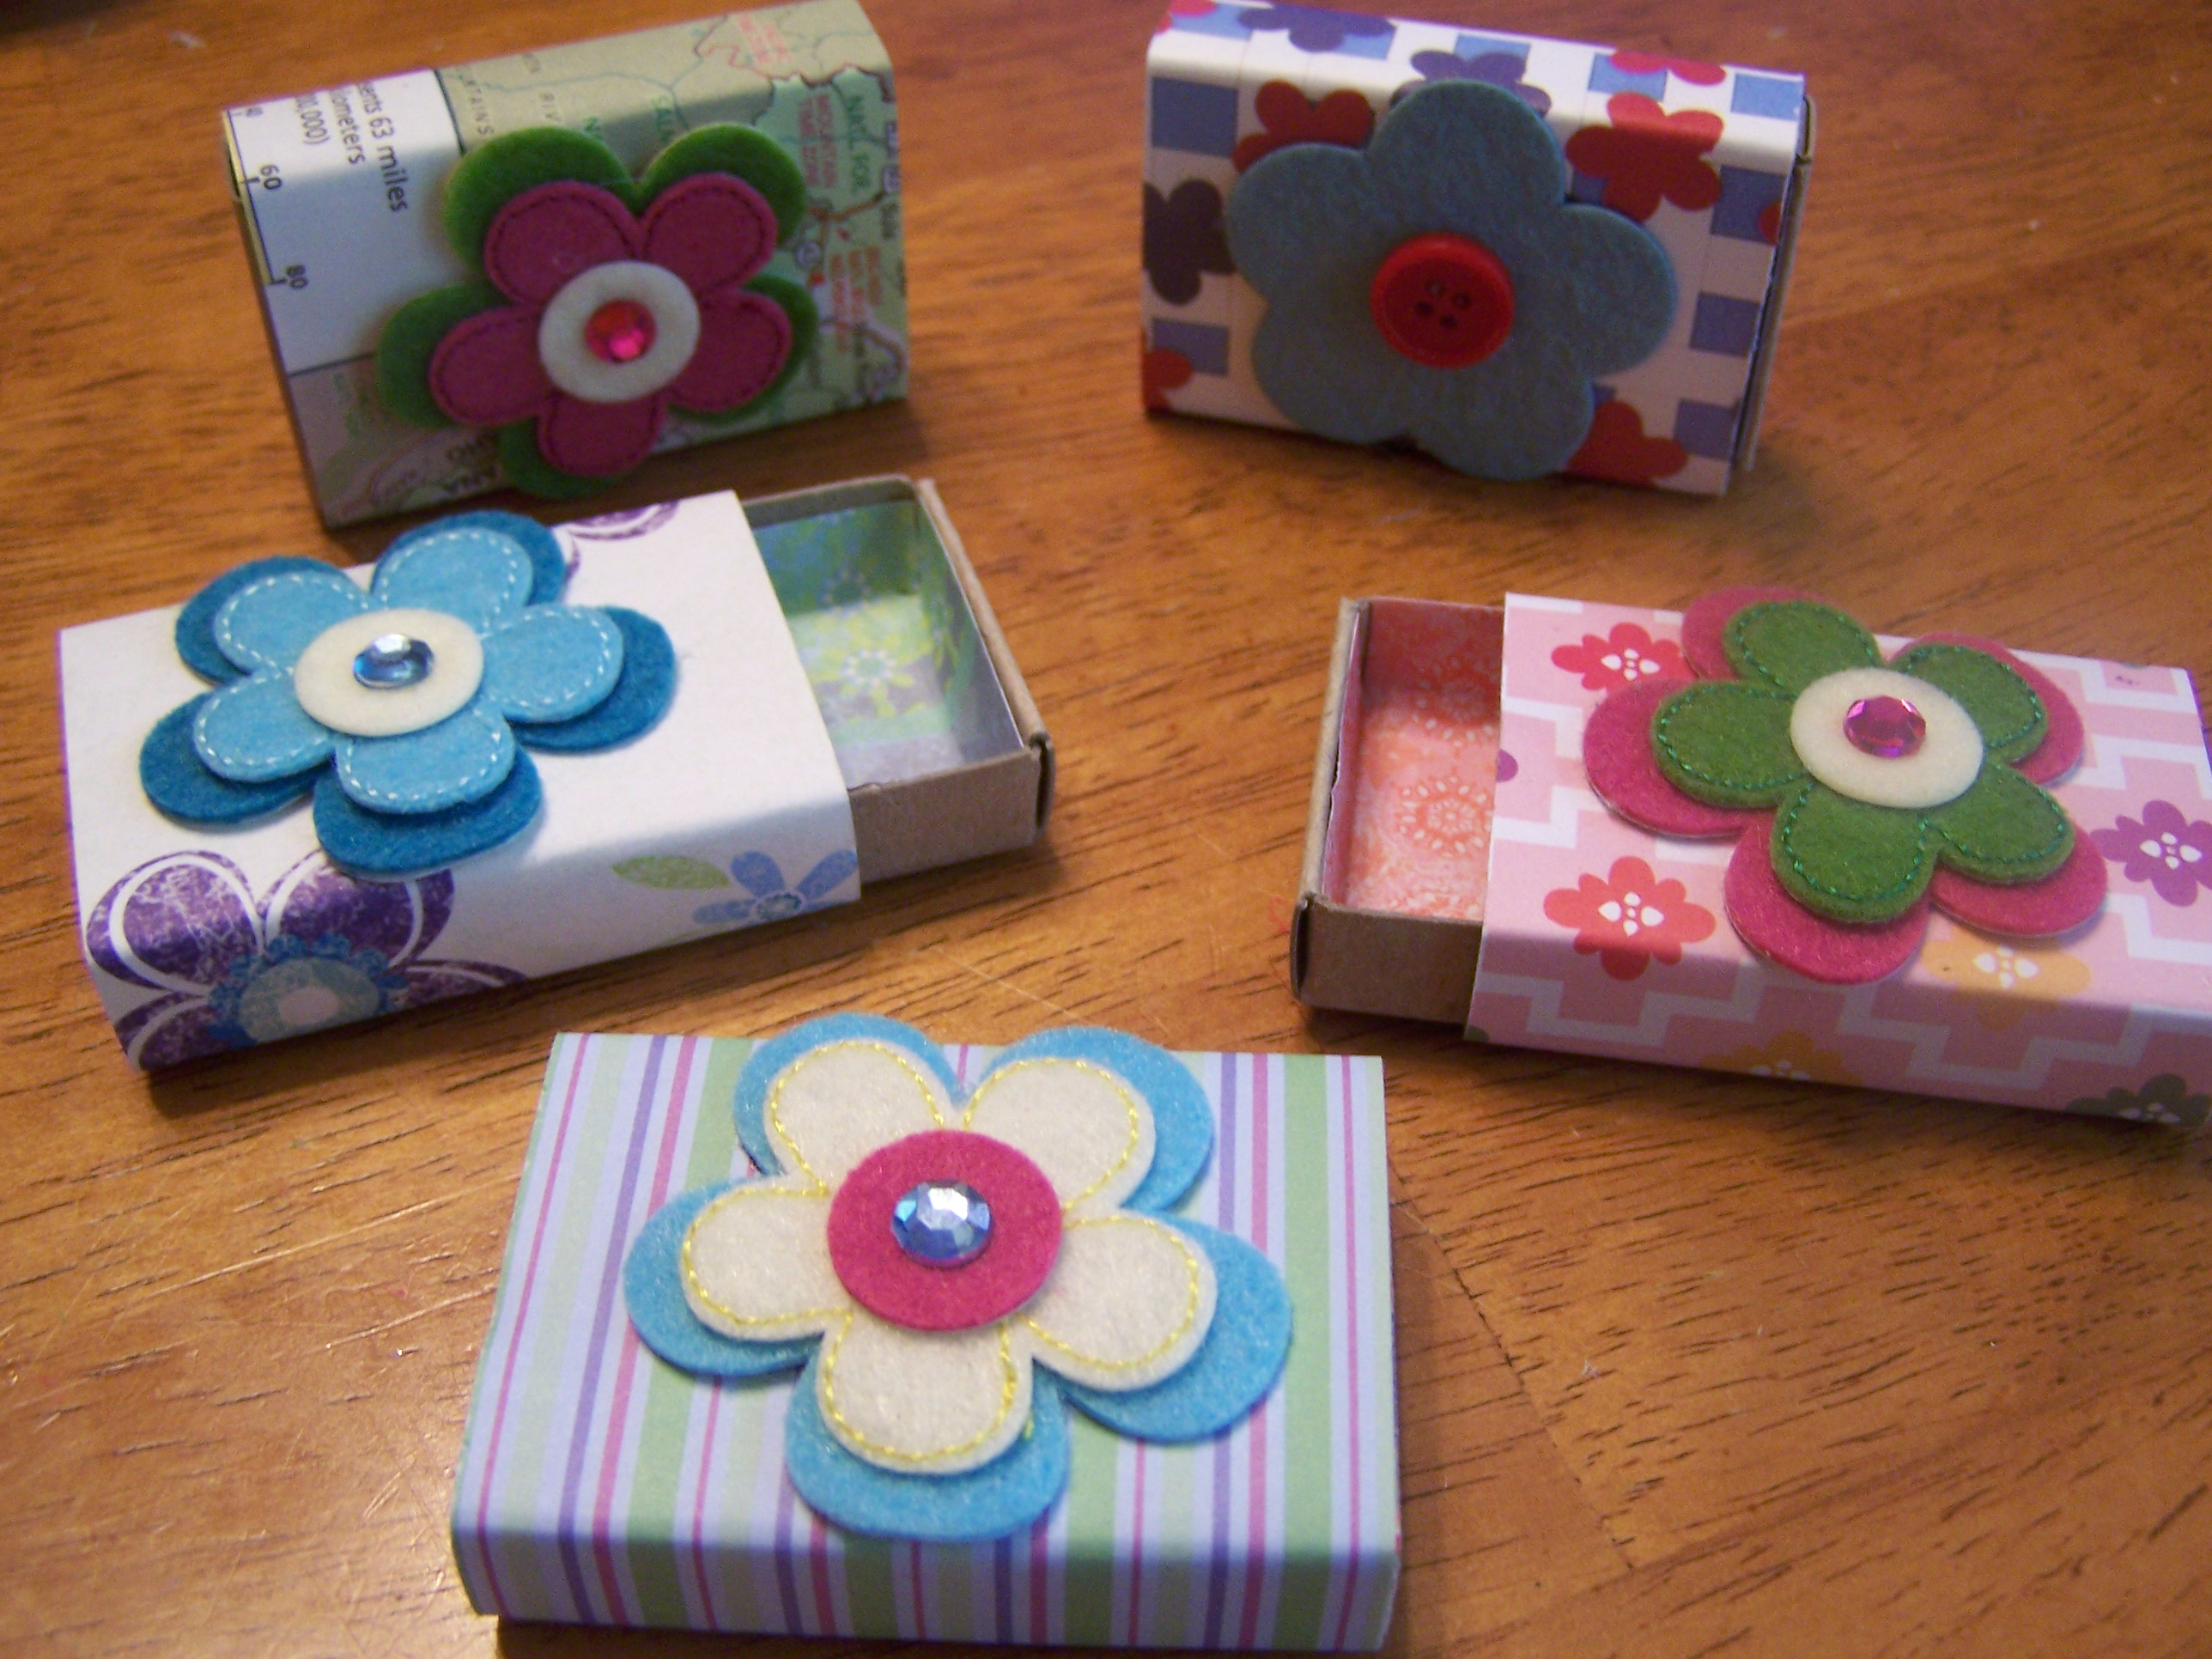 Easy Sellable Craft Ideas http://lifewithmichelle.wordpress.com/category/fun-and-easy-crafts/